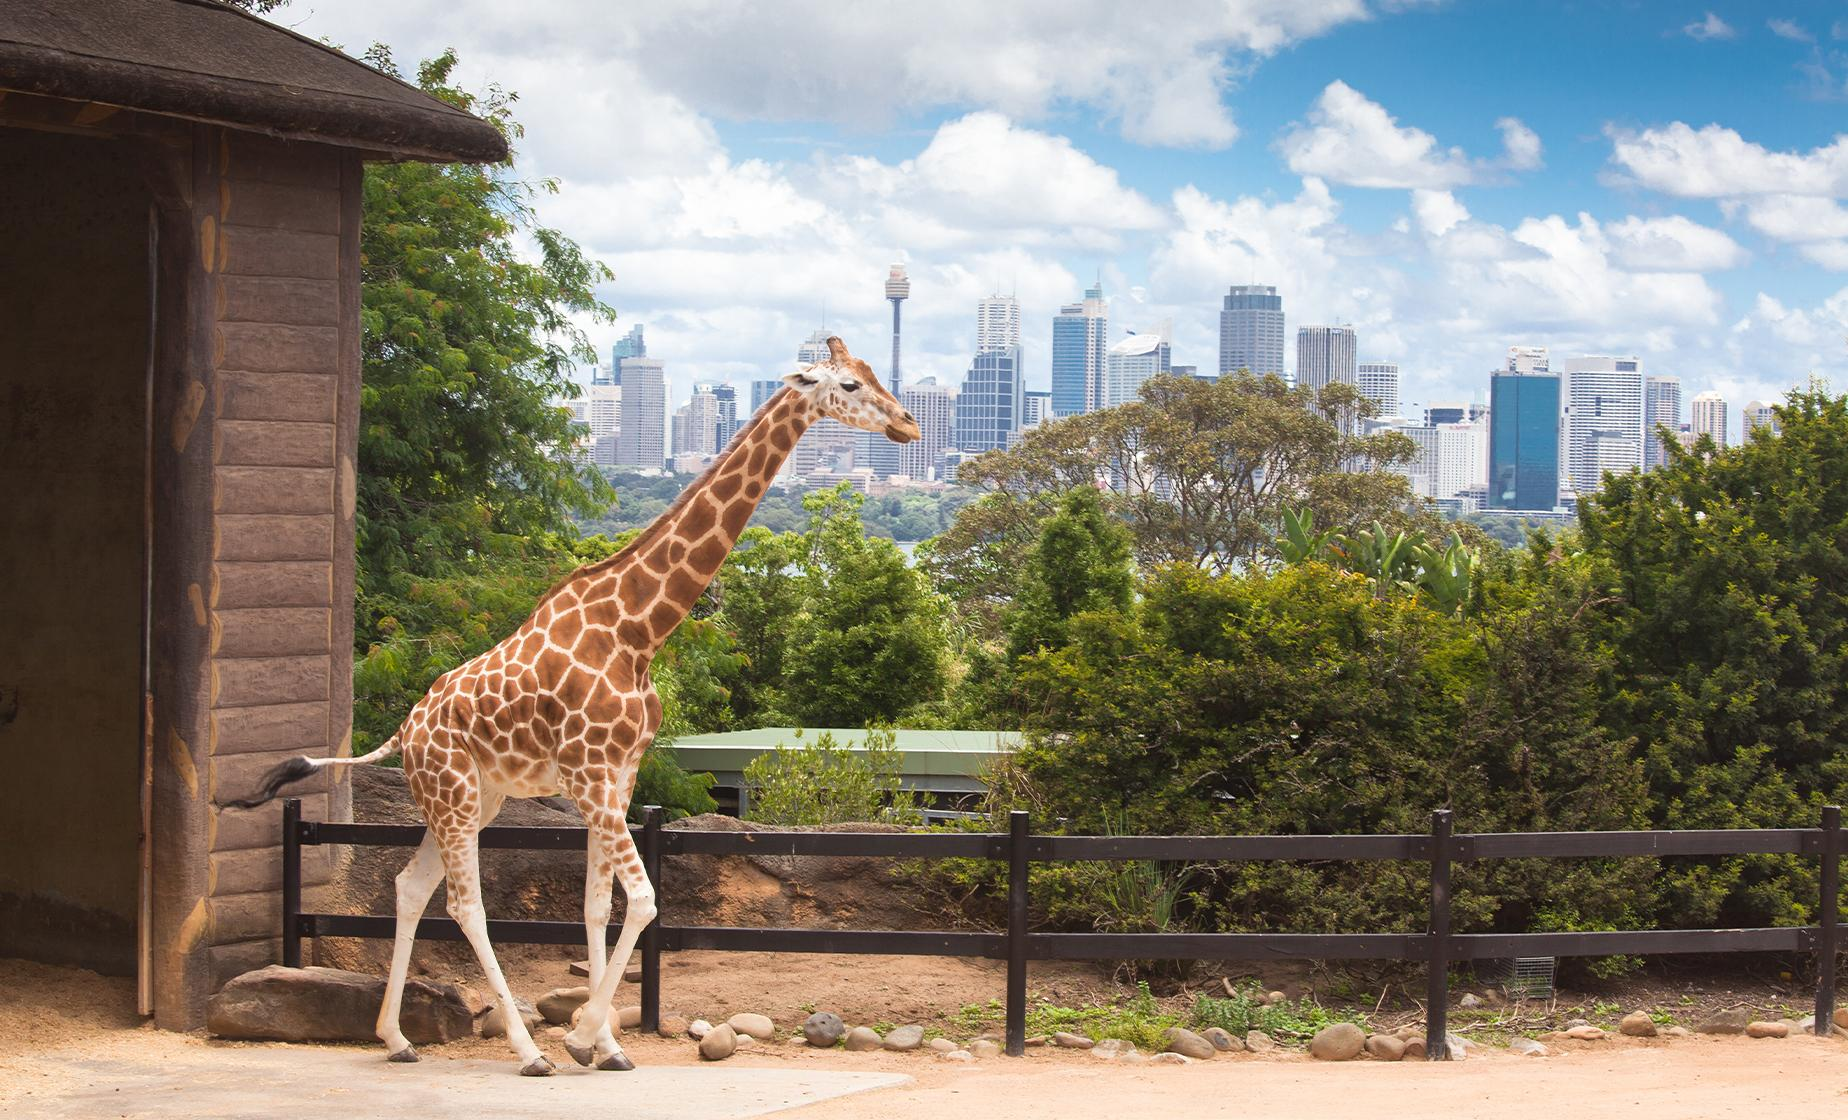 Sunshine Coast Australia Zoo Tour from Brisbane (Glasshouse Mountains)